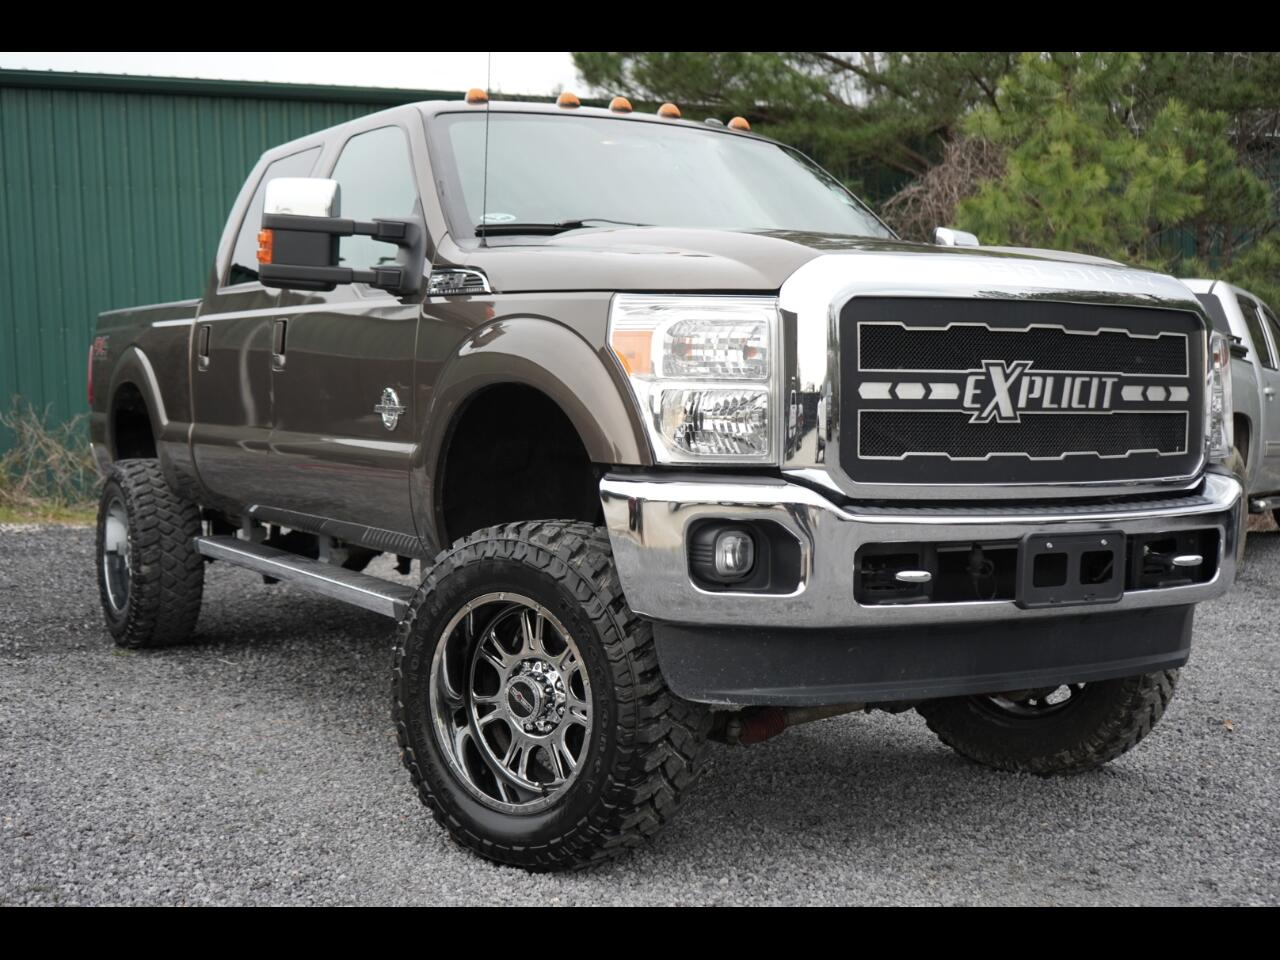 2015 Ford Super Duty F-350 SRW 4wd Crew Cab Diesel Lariat Power Stroke